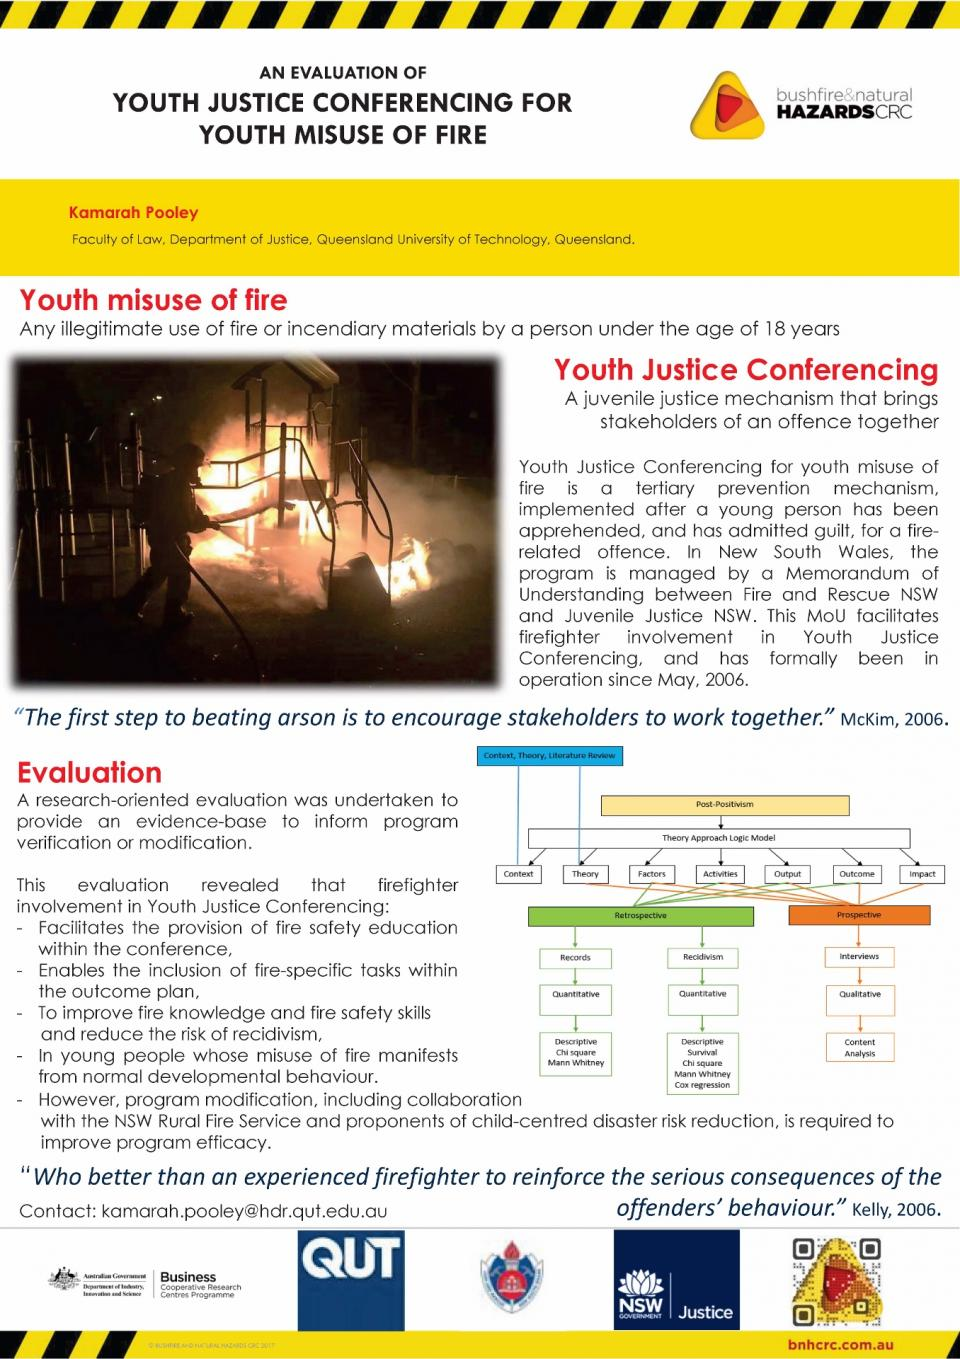 An evaluation of youth justice conferencing for youth misuse of fire